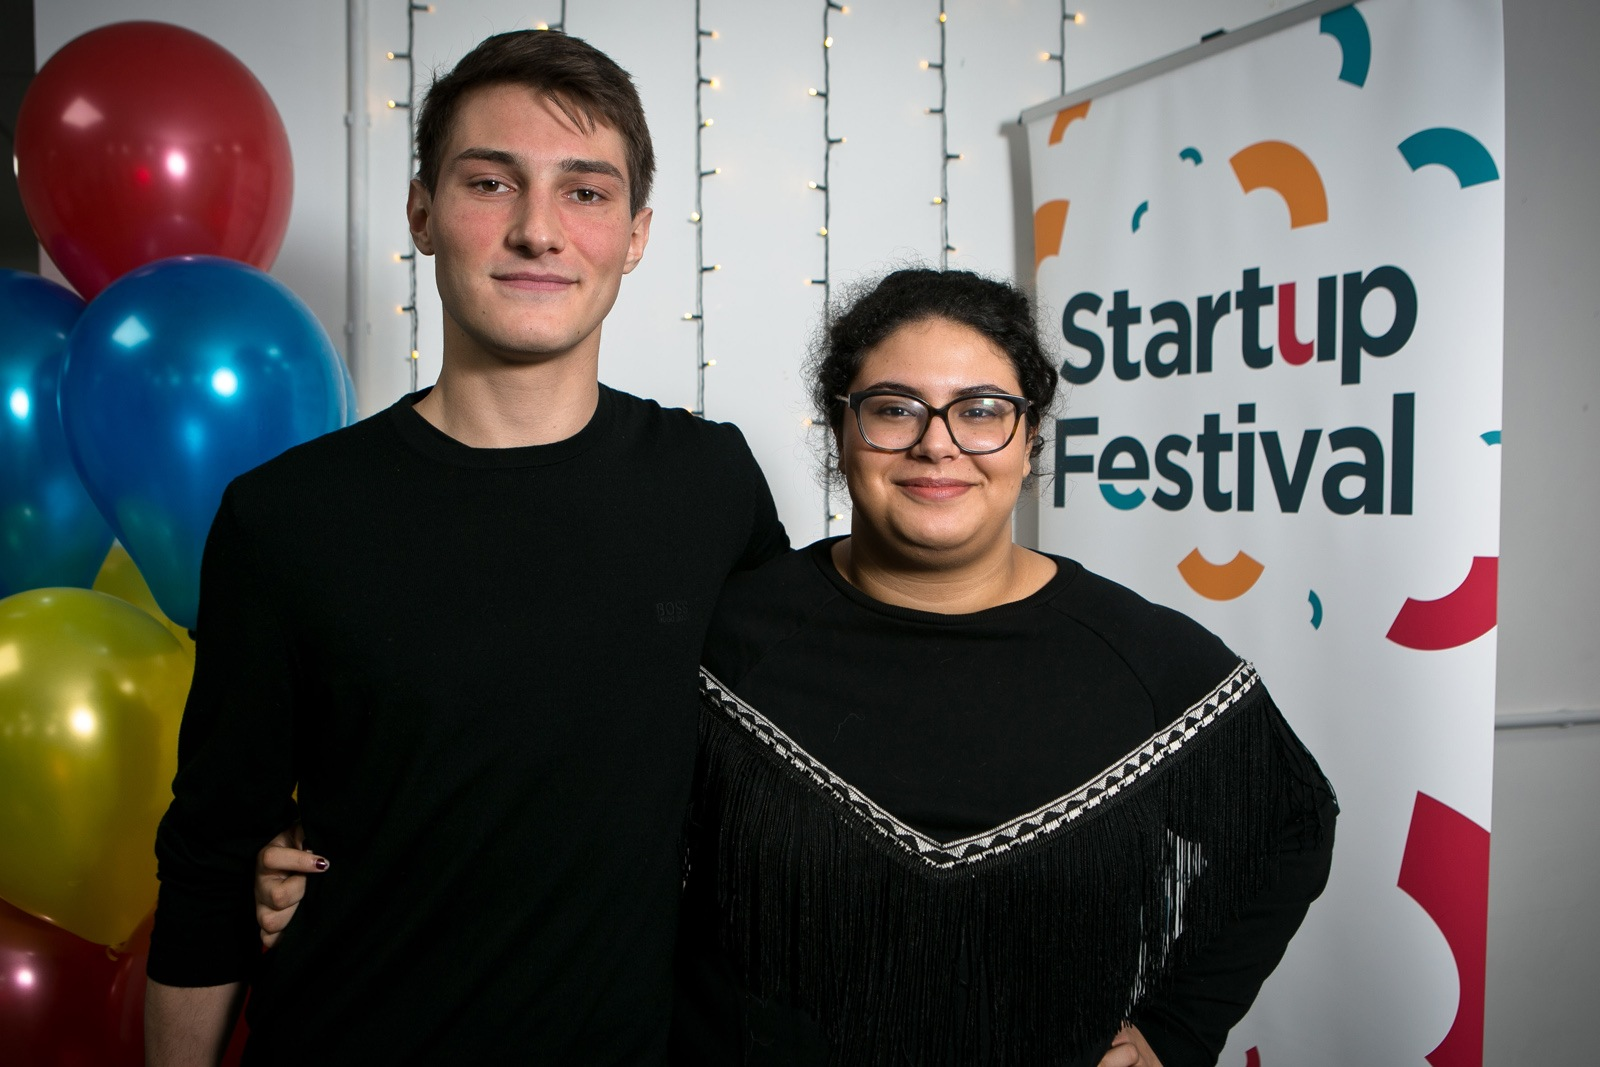 Moritz Müller and Iman Mouloudi of Augment Bionics